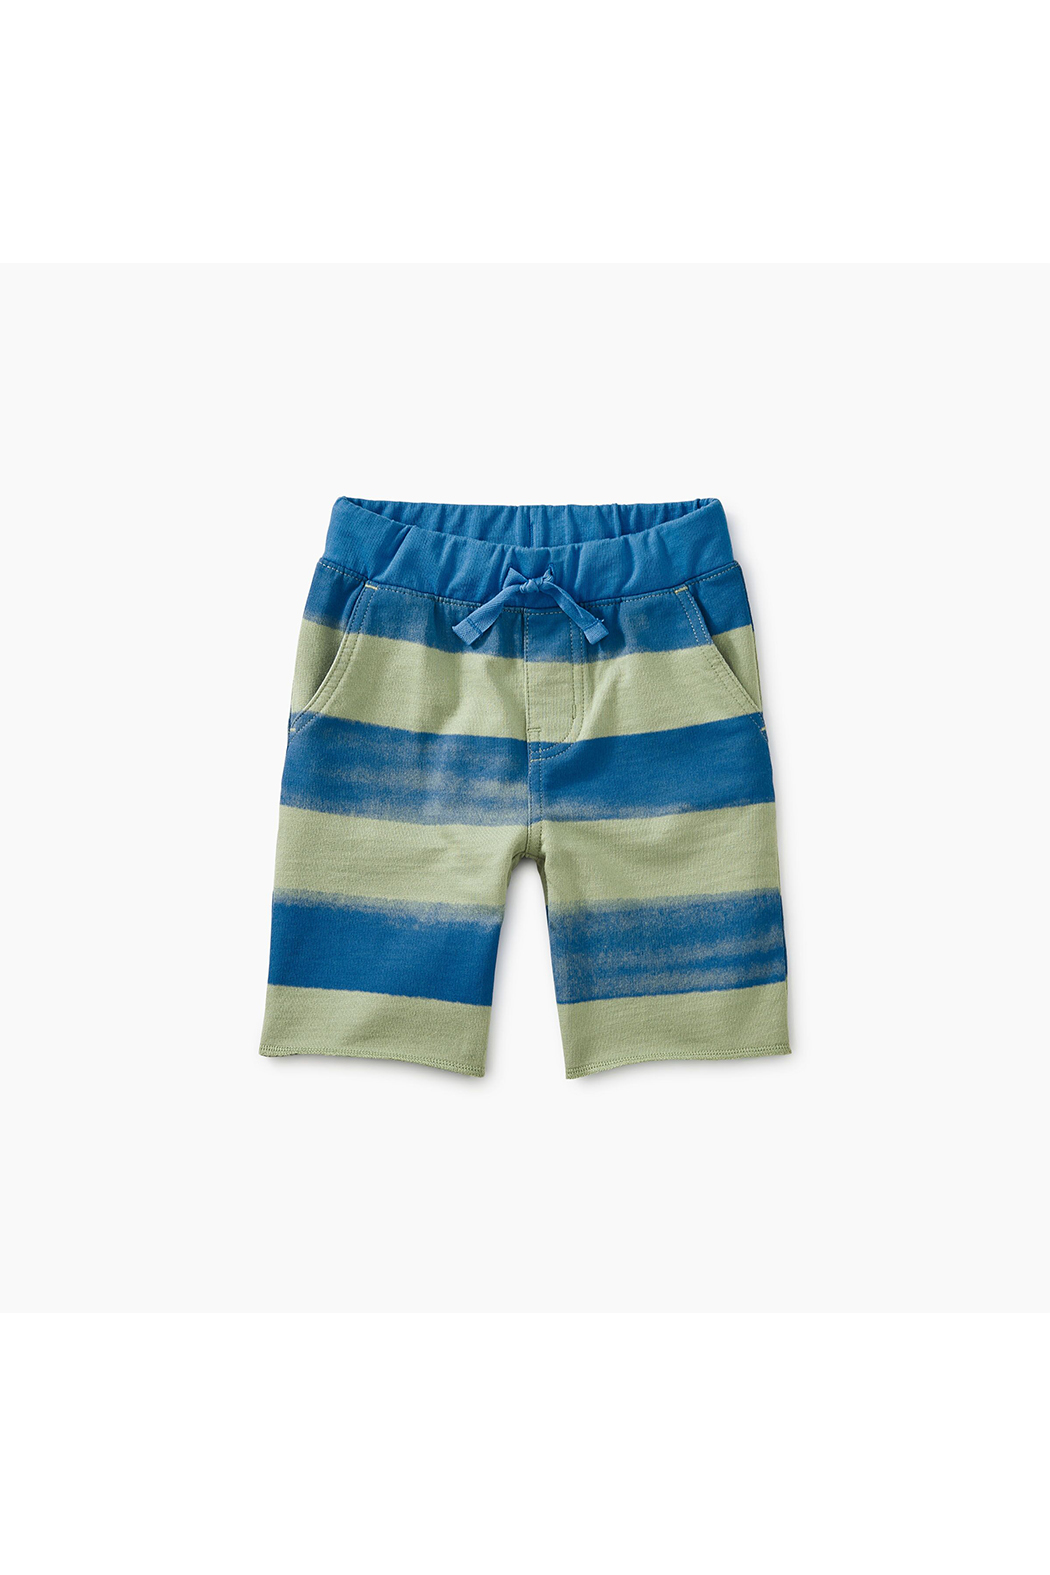 Tea Collection Patterned Crusier Baby Shorts - Main Image